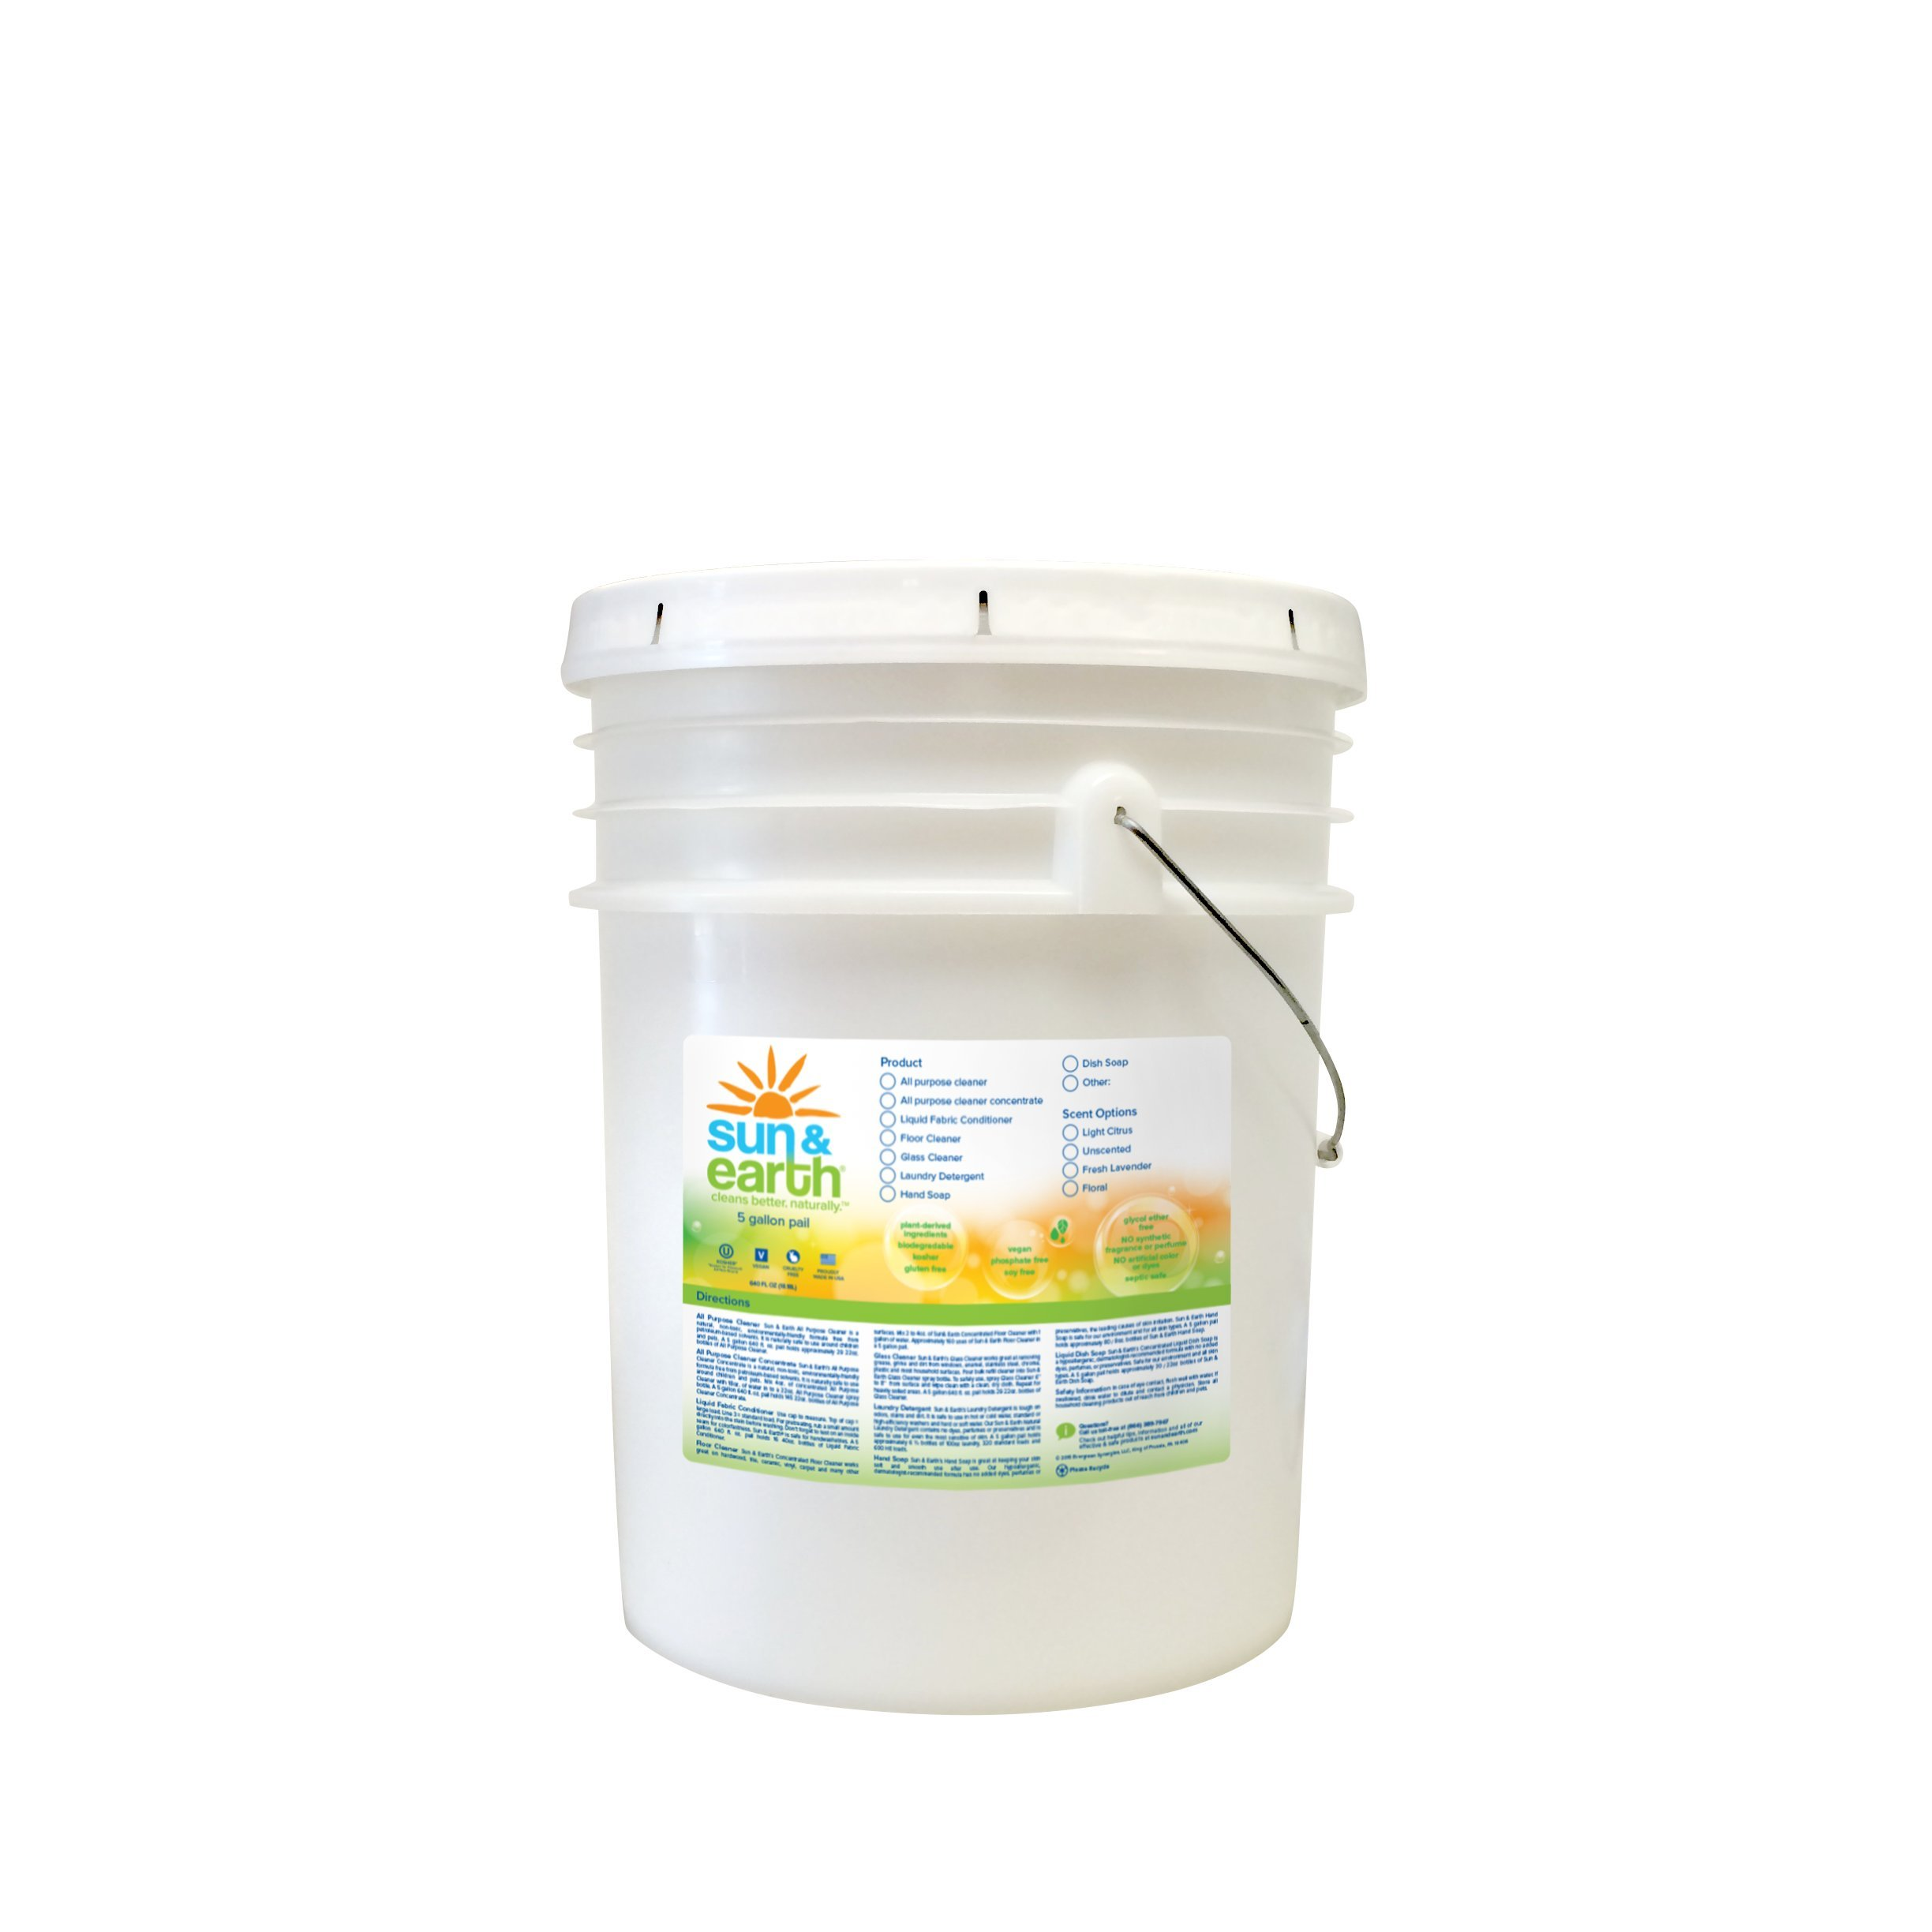 Sun & Earth Natural All- purpose Cleaner, Light Citrus 640 fl. Oz (Concentrated, 5 Gallon Pail) (PACK OF 1)